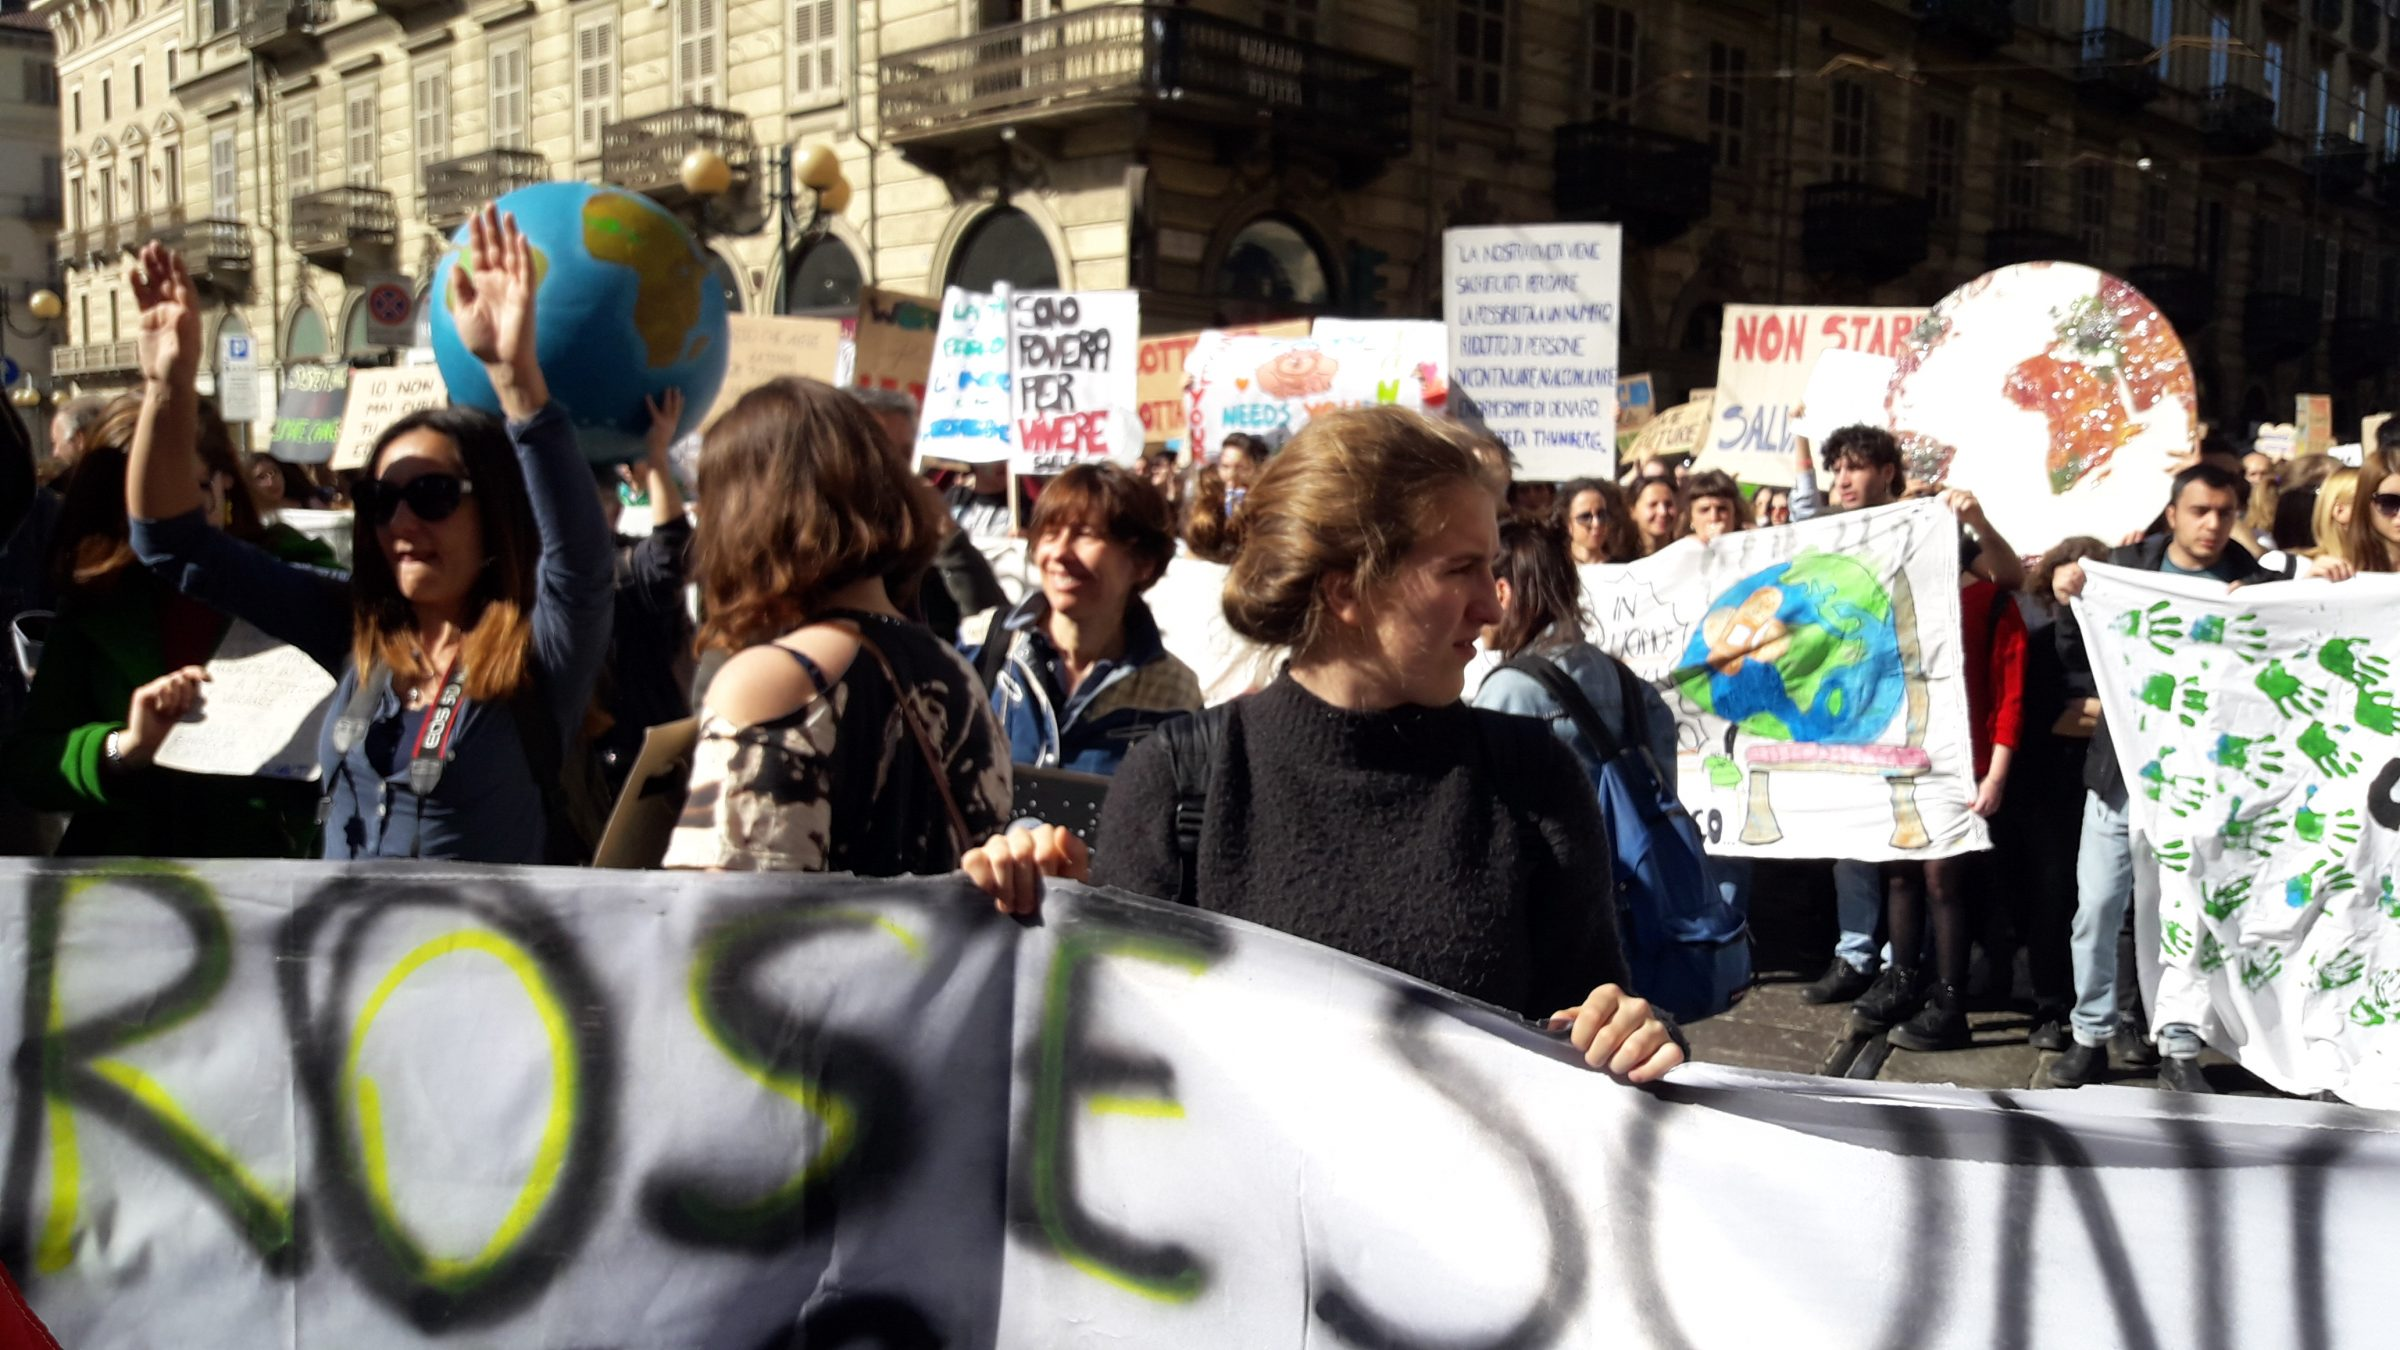 We took part to FridayForFuture in Turin